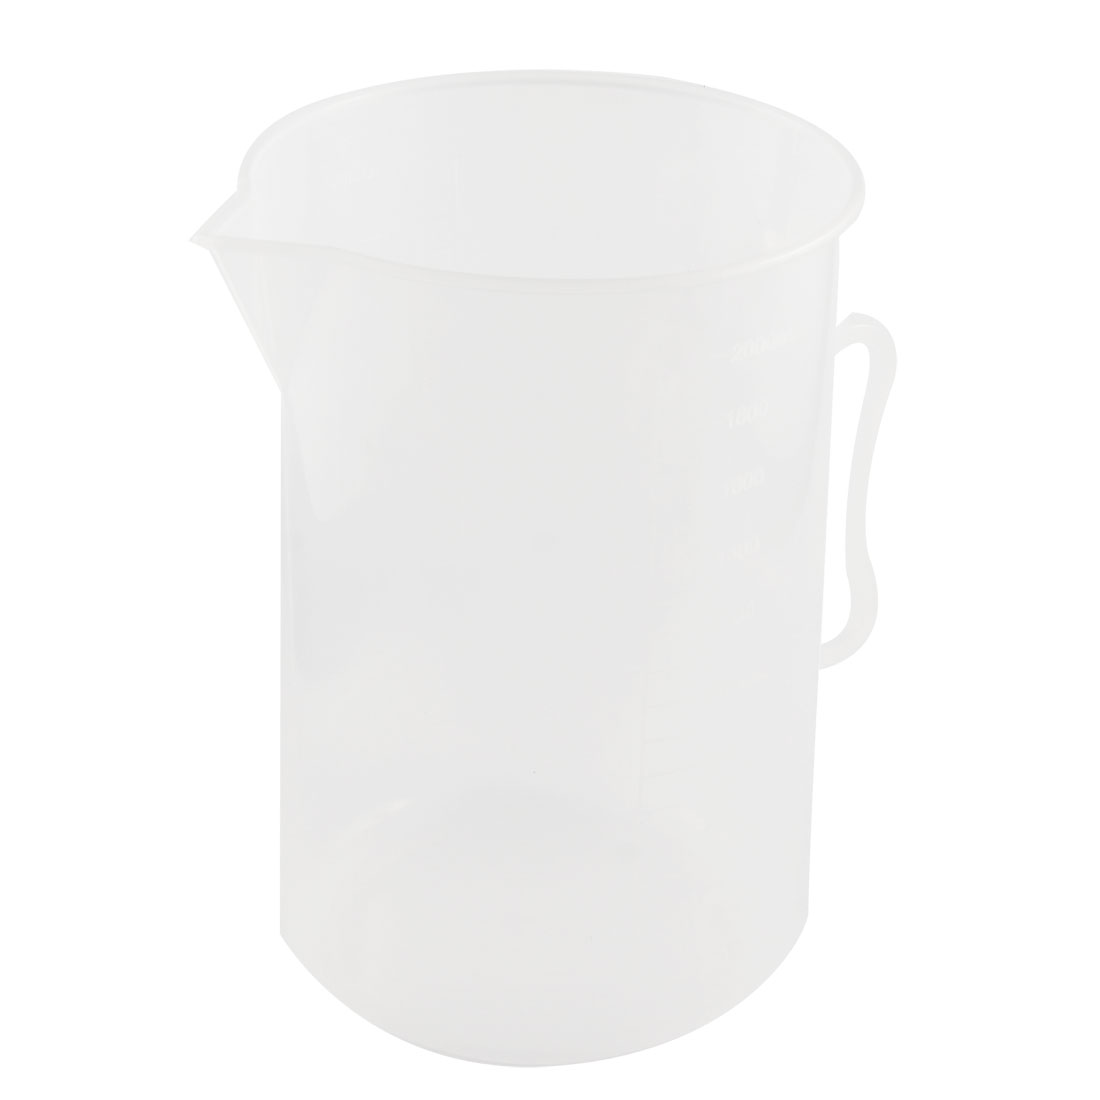 Laboratory Clear White Plastic 2000mL Measuring Cup Handled Beaker